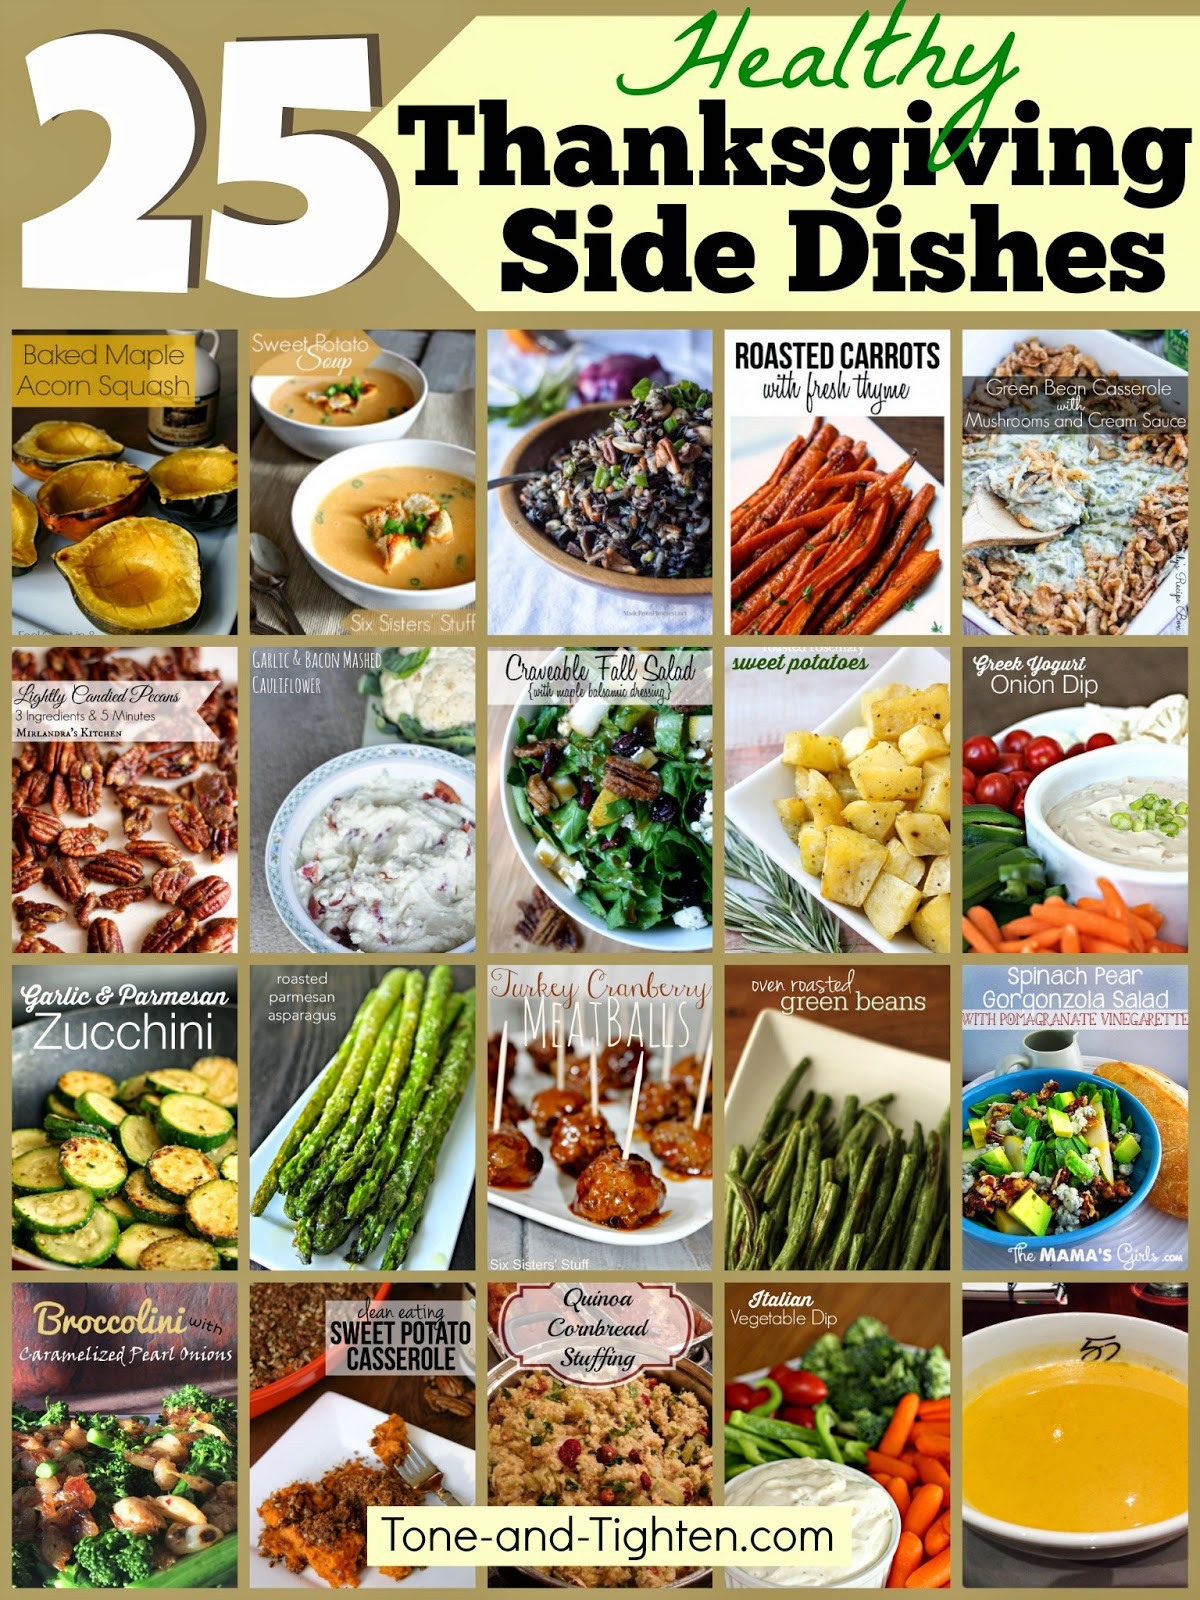 Healthy Thanksgiving Sides  25 Healthy Thanksgiving Side Dishes – Healthier options